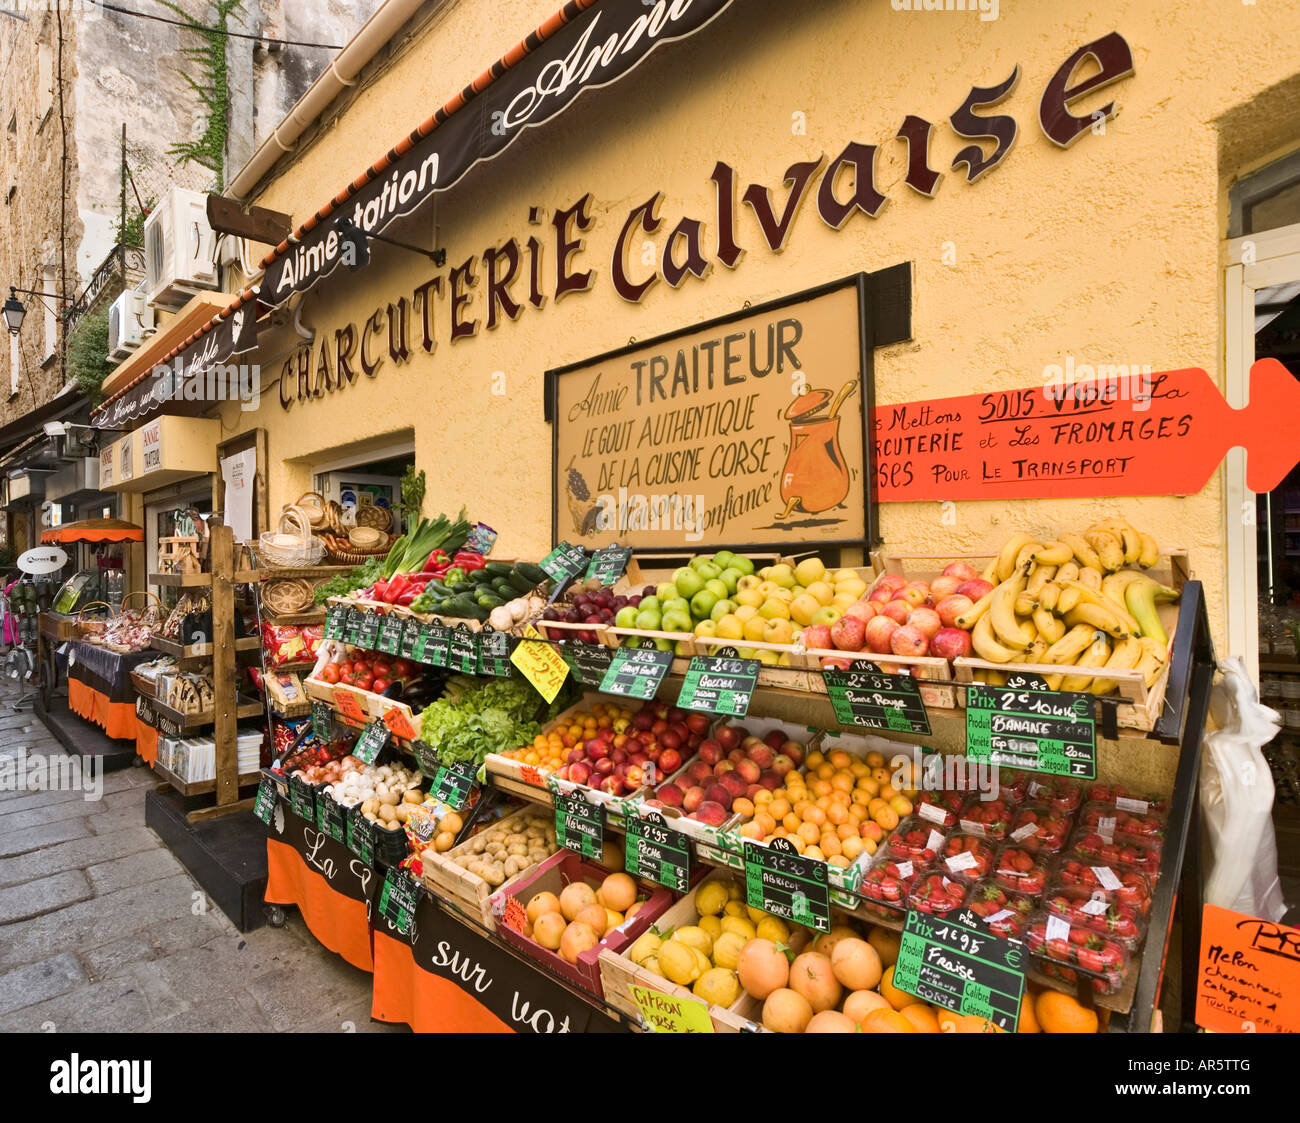 Cafe in the vieux port terra vecchia bastia corsica france stock - Charcuterie And Greengrocers In The Old Town Calvi The Balagne Corsica France